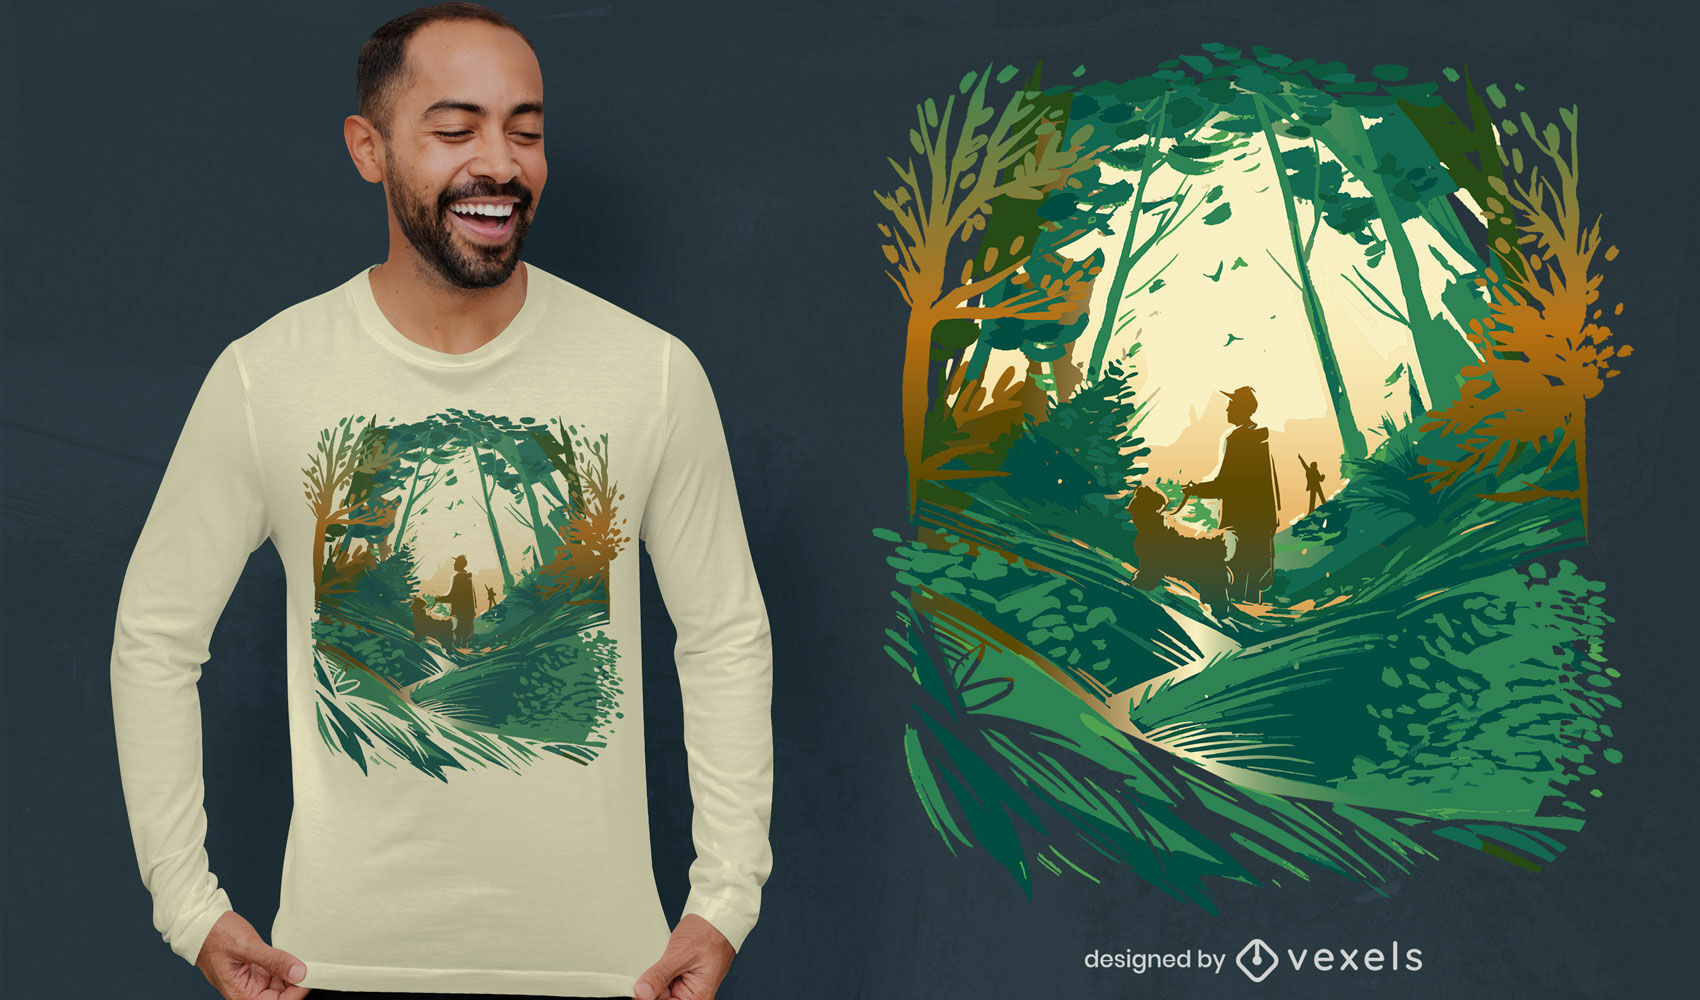 Walking dog in the woods t-shirt design